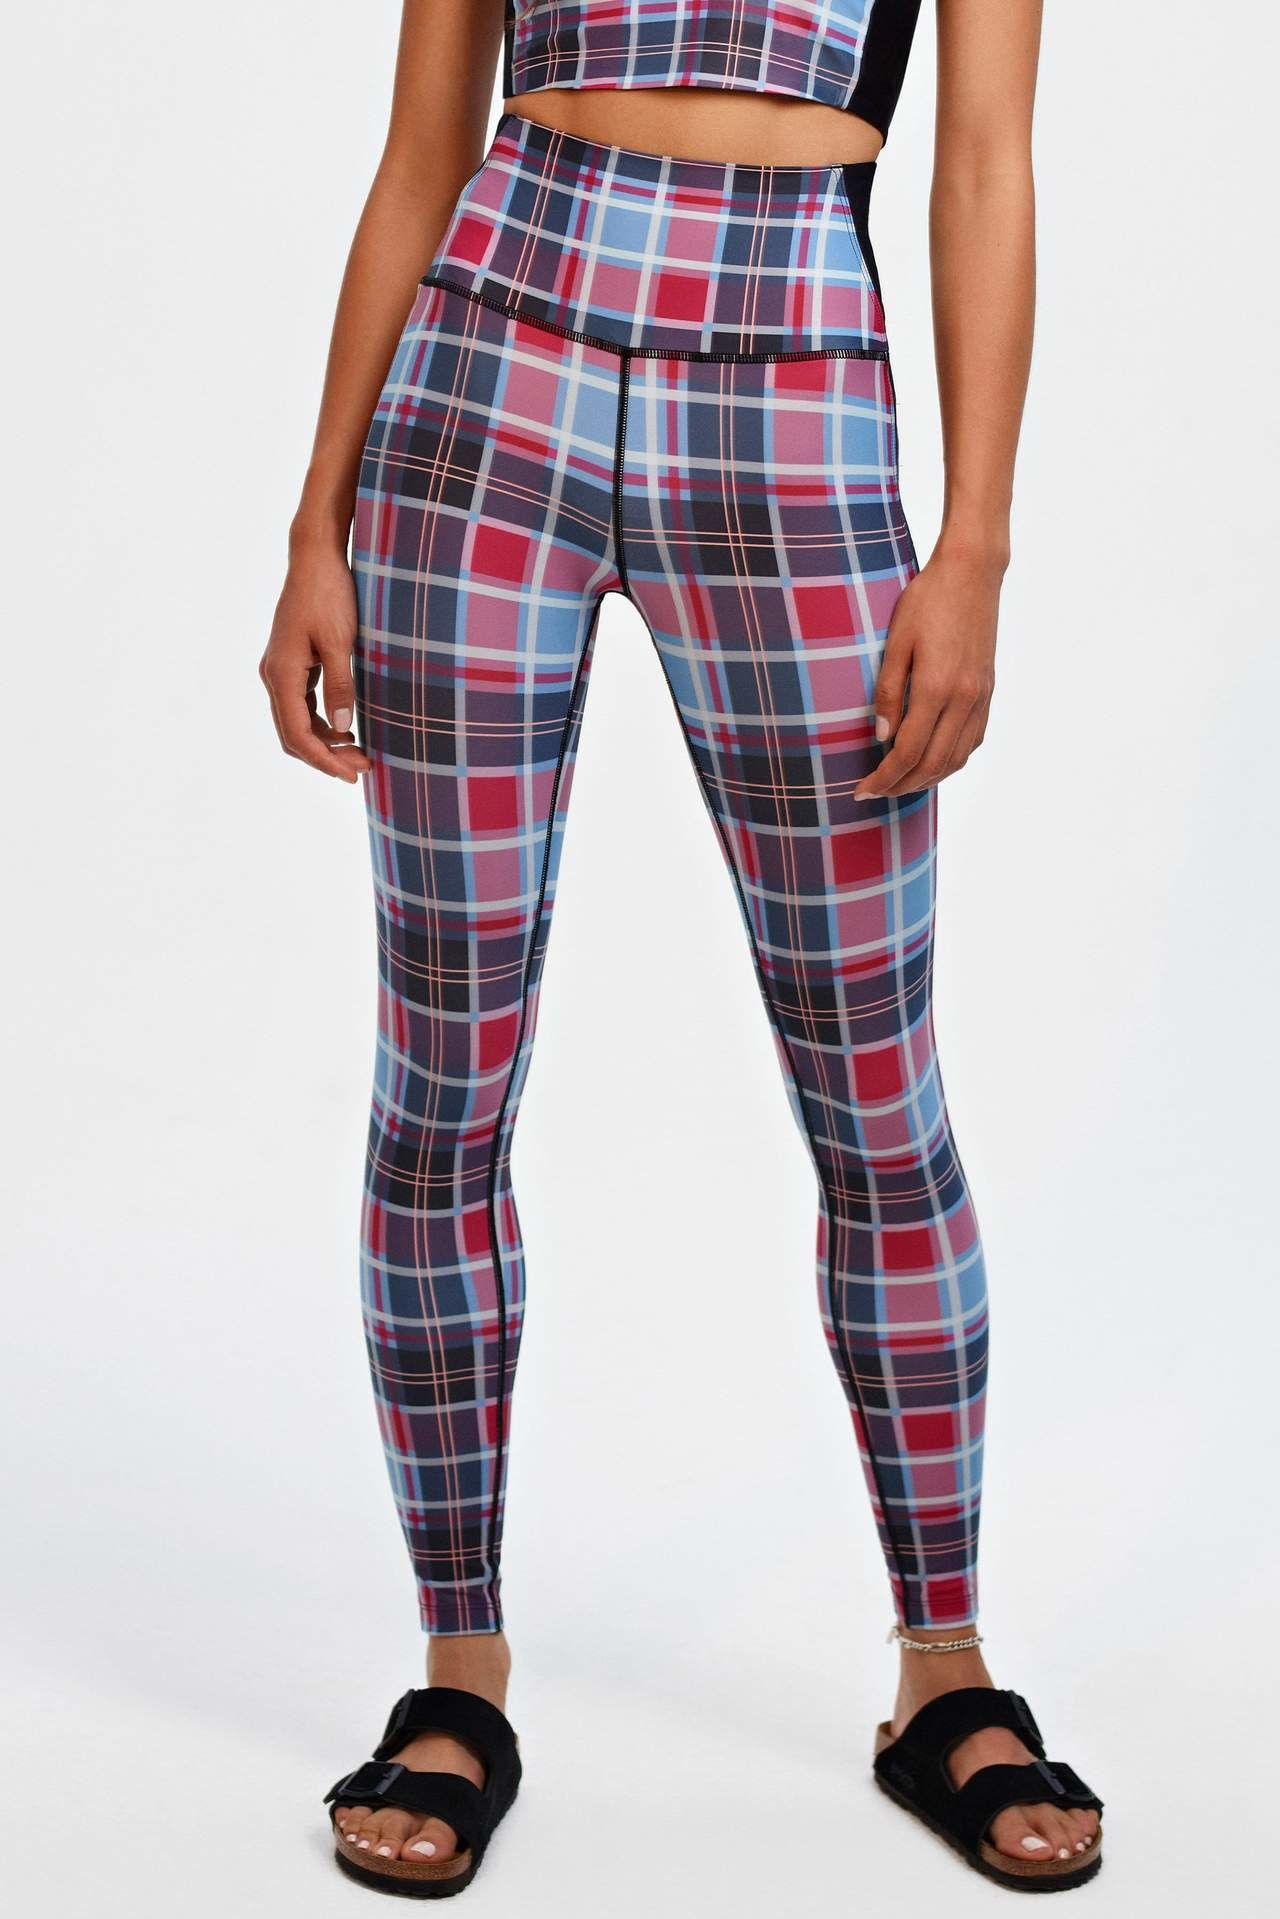 Splits59 Agathe HW 7/8 Jacinthe Plaid